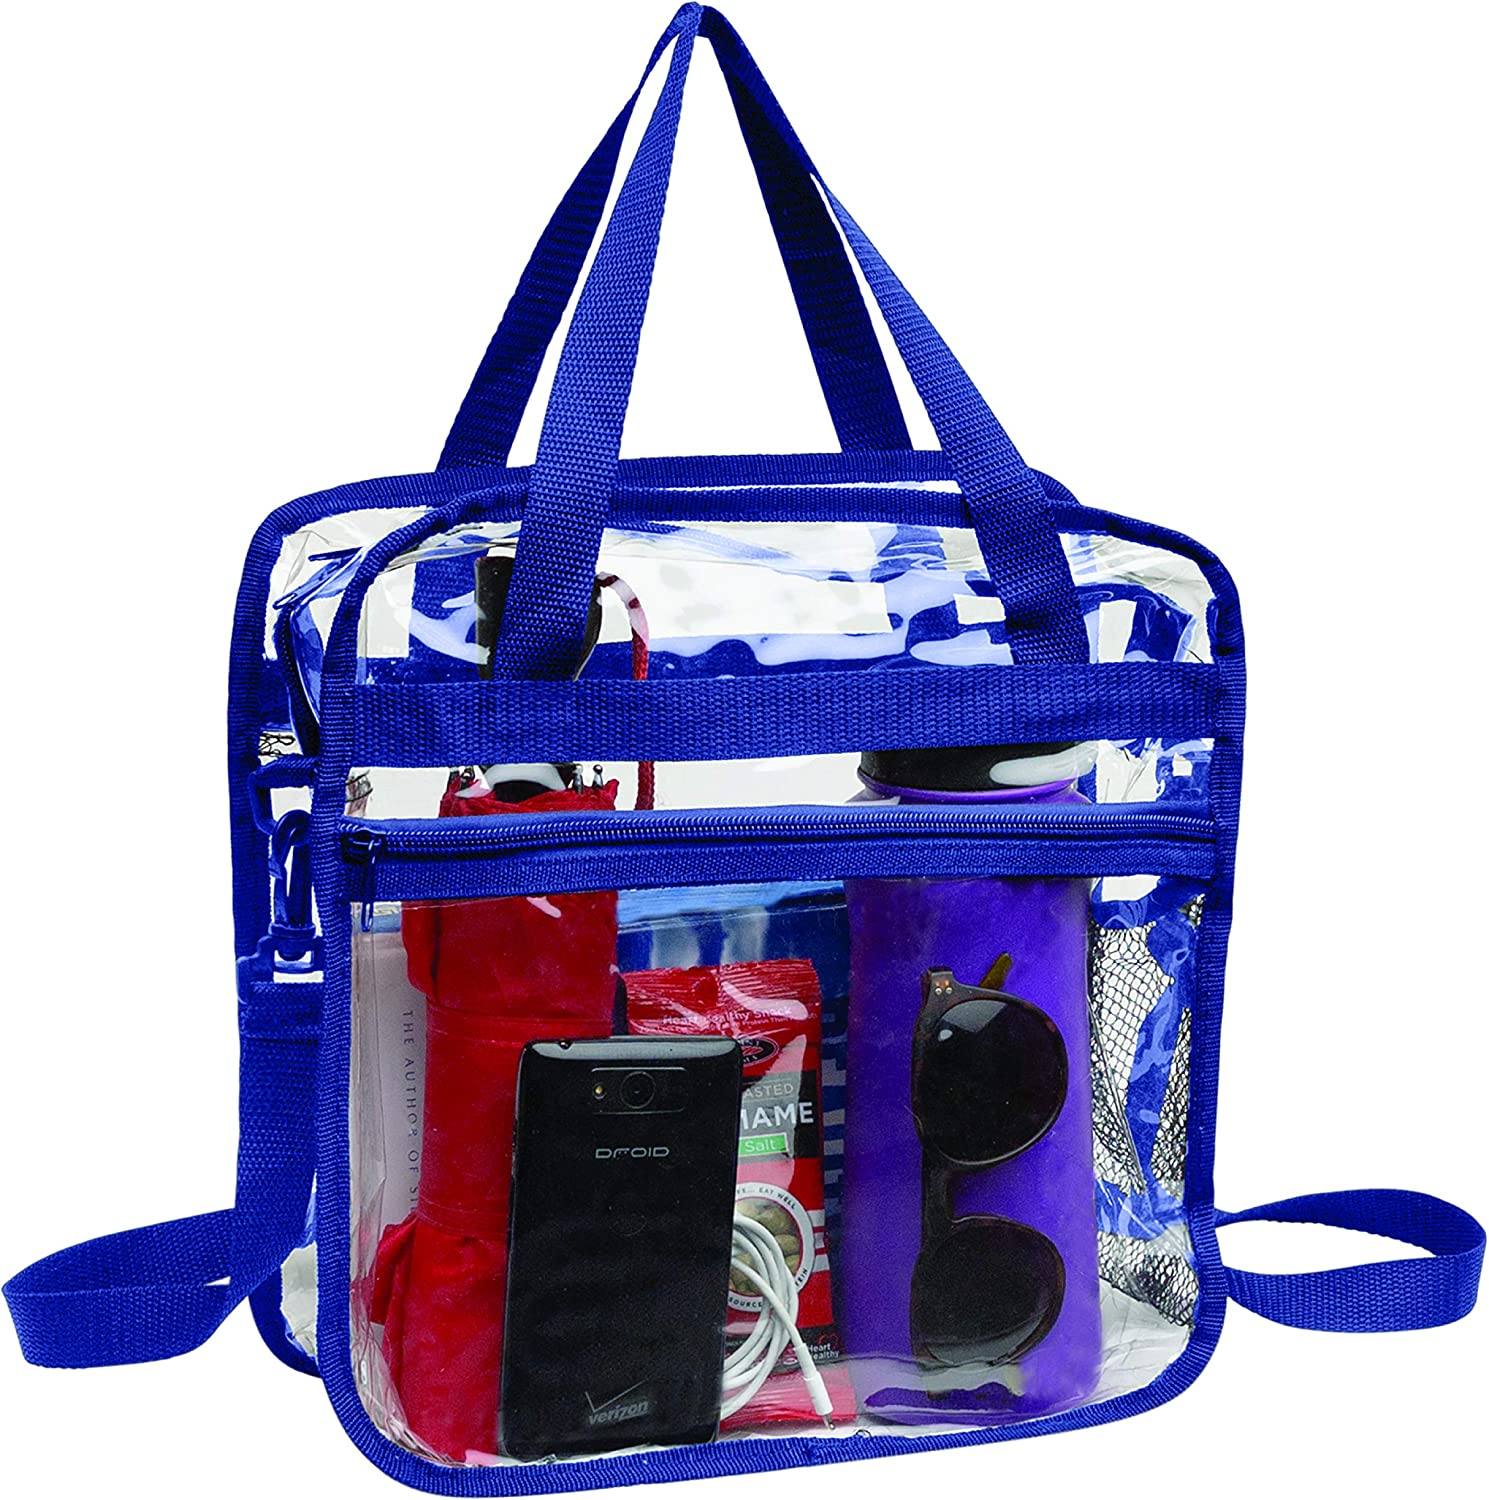 Clear Bag Stadium Approved Tote Double Max 89% OFF At the price Adju Zippers Handles with